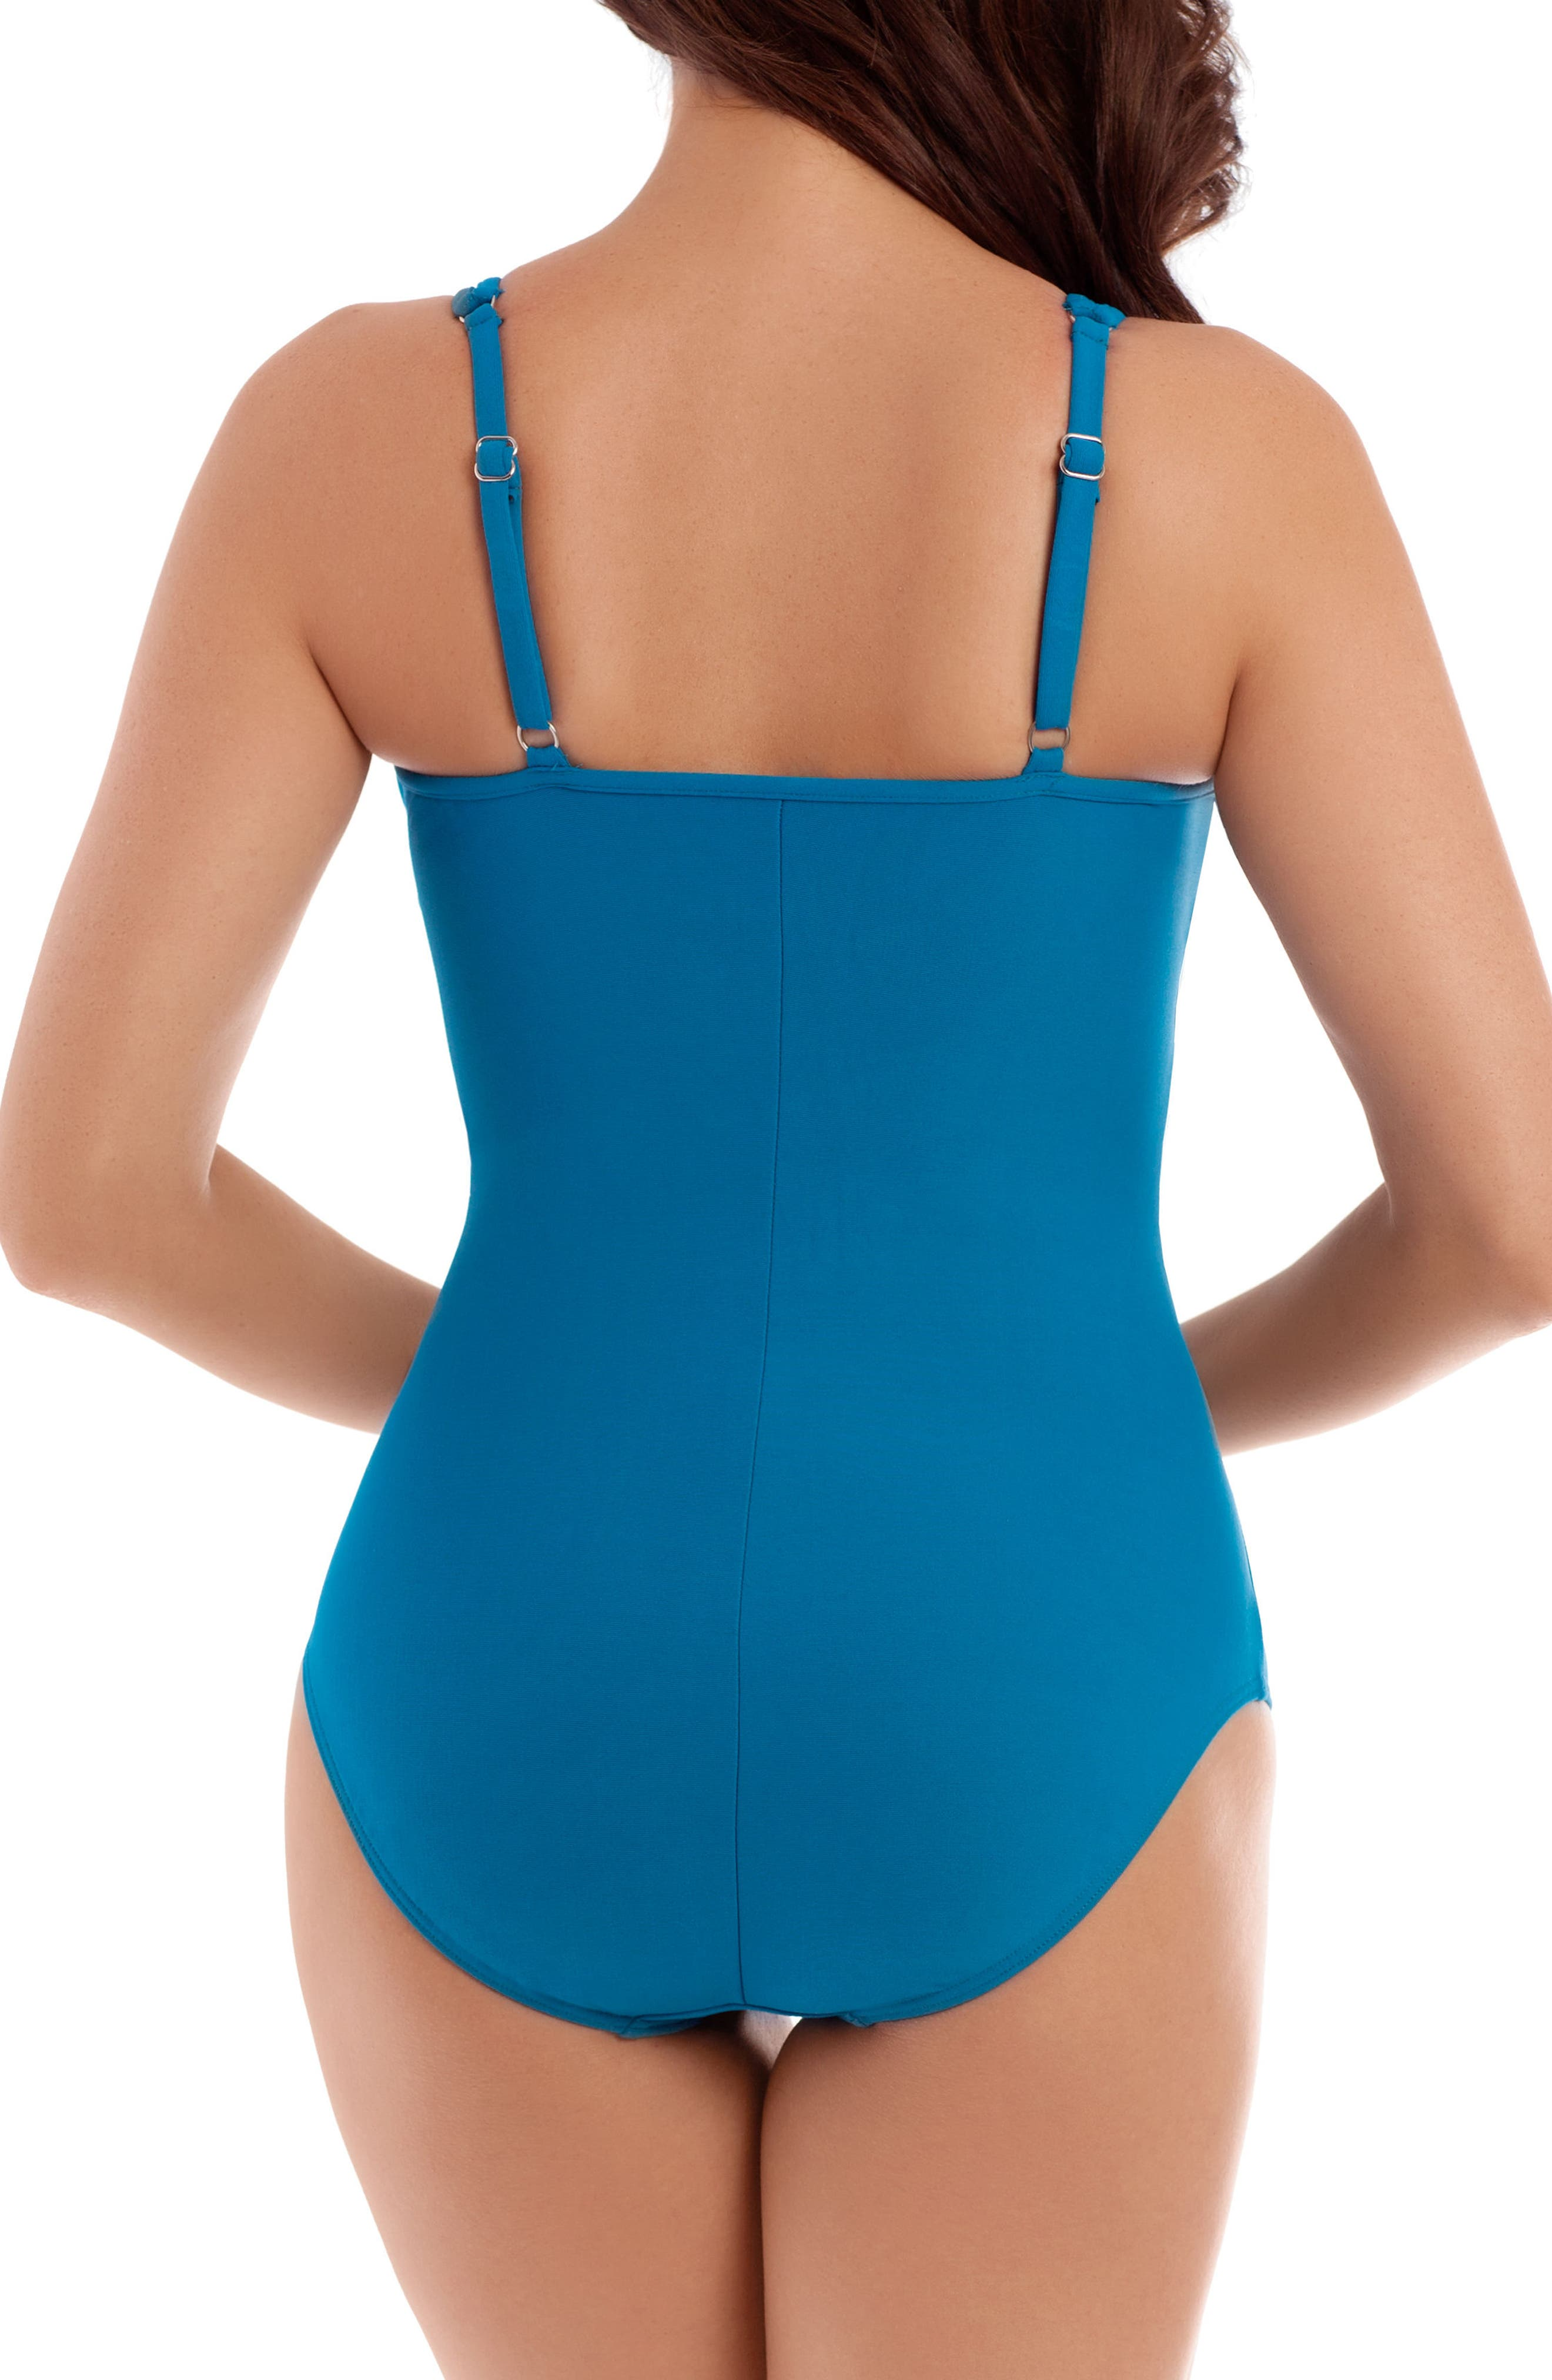 Illusionists Bandwith High Neck Underwire One-Piece Swimsuit,                             Alternate thumbnail 2, color,